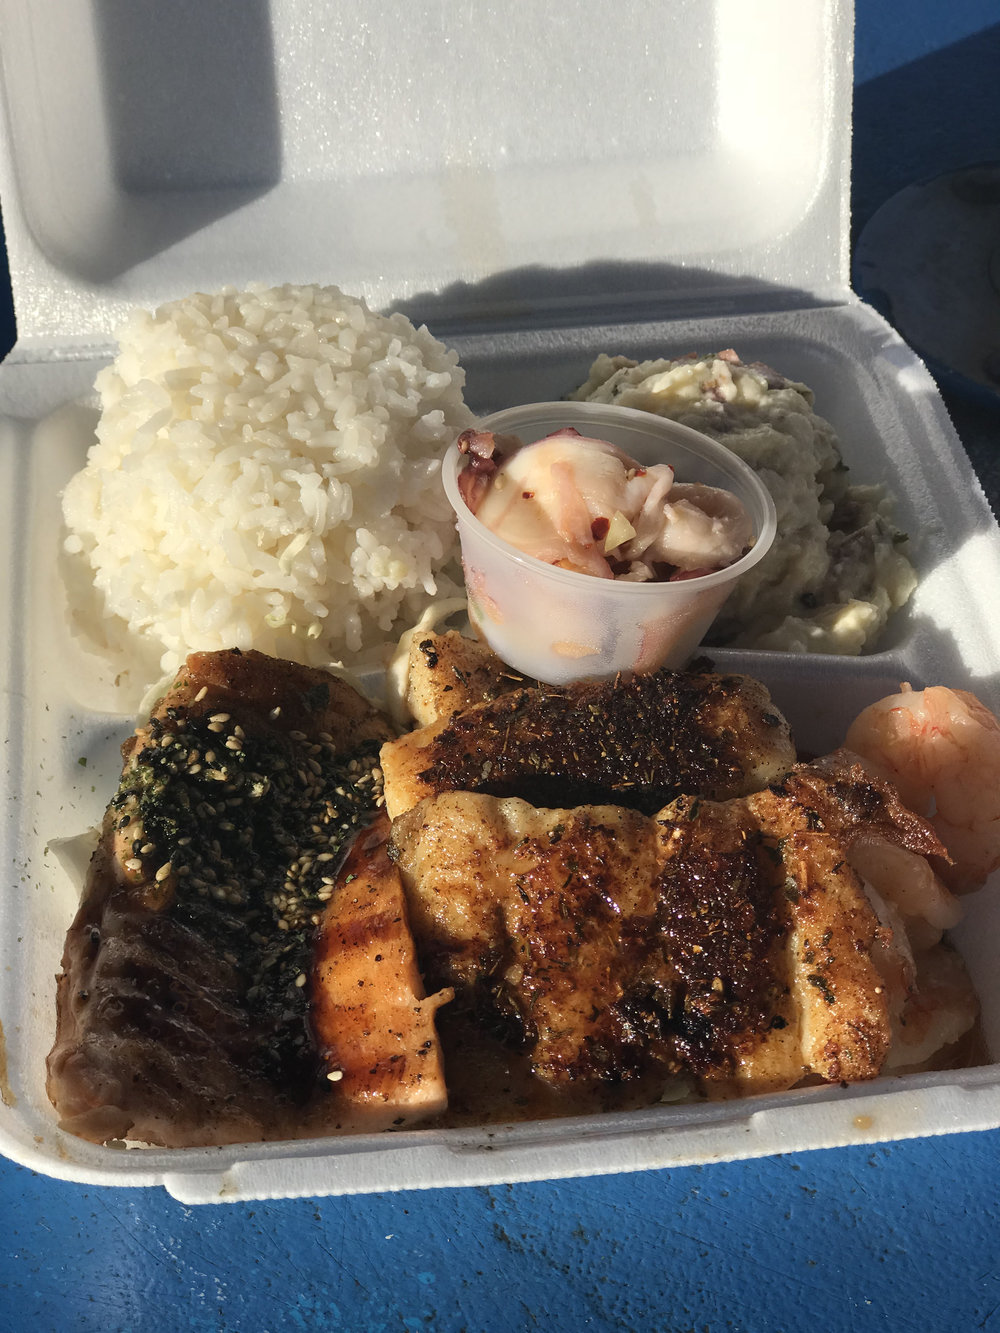 Shoreline Chef Plate.  Blackened island fish of the day (snapper), garlic shrimp, furikake salmon, rice, salad, and a serving of poe of your choice (tako poke).